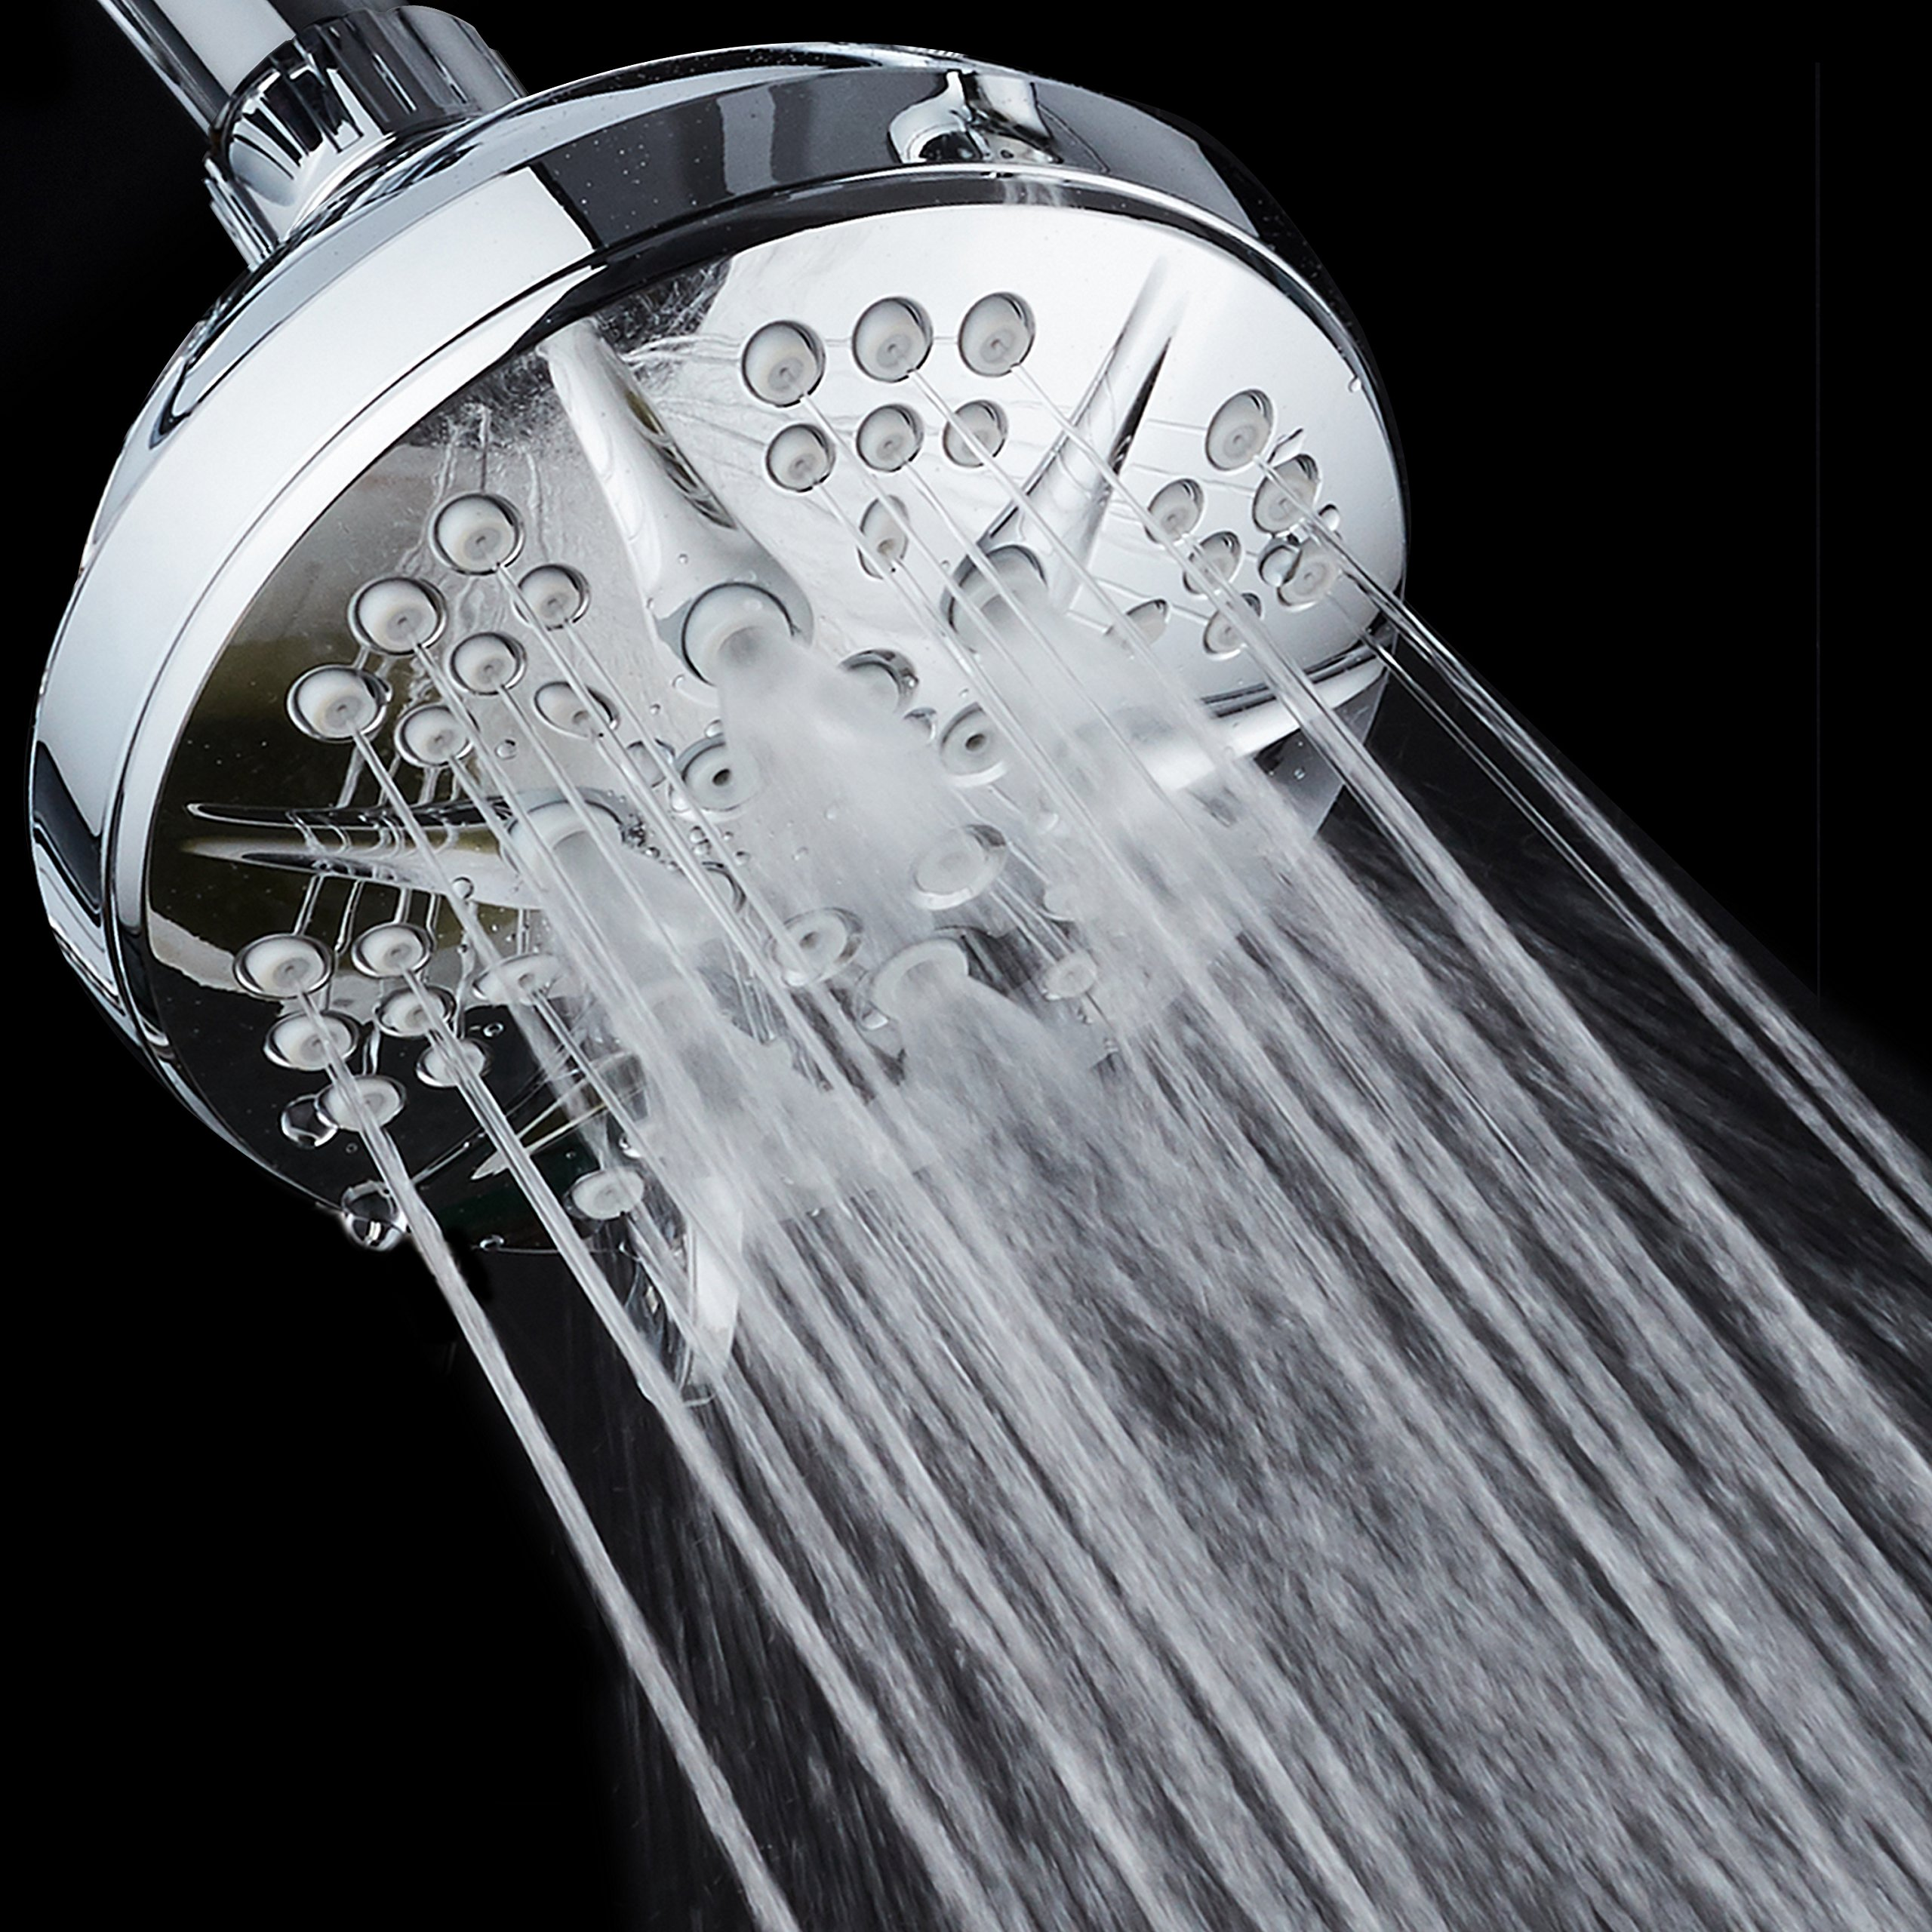 NOTILUS Giant High-Pressure 6-setting 4.3'' Face Modern Luxury Spa Shower Head - Solid Brass Metal Connection Nut, Angle-Adjustable Ball Joint, Anti-Clog Jets, All-Chrome Finish, by HotelSpa (Image #6)